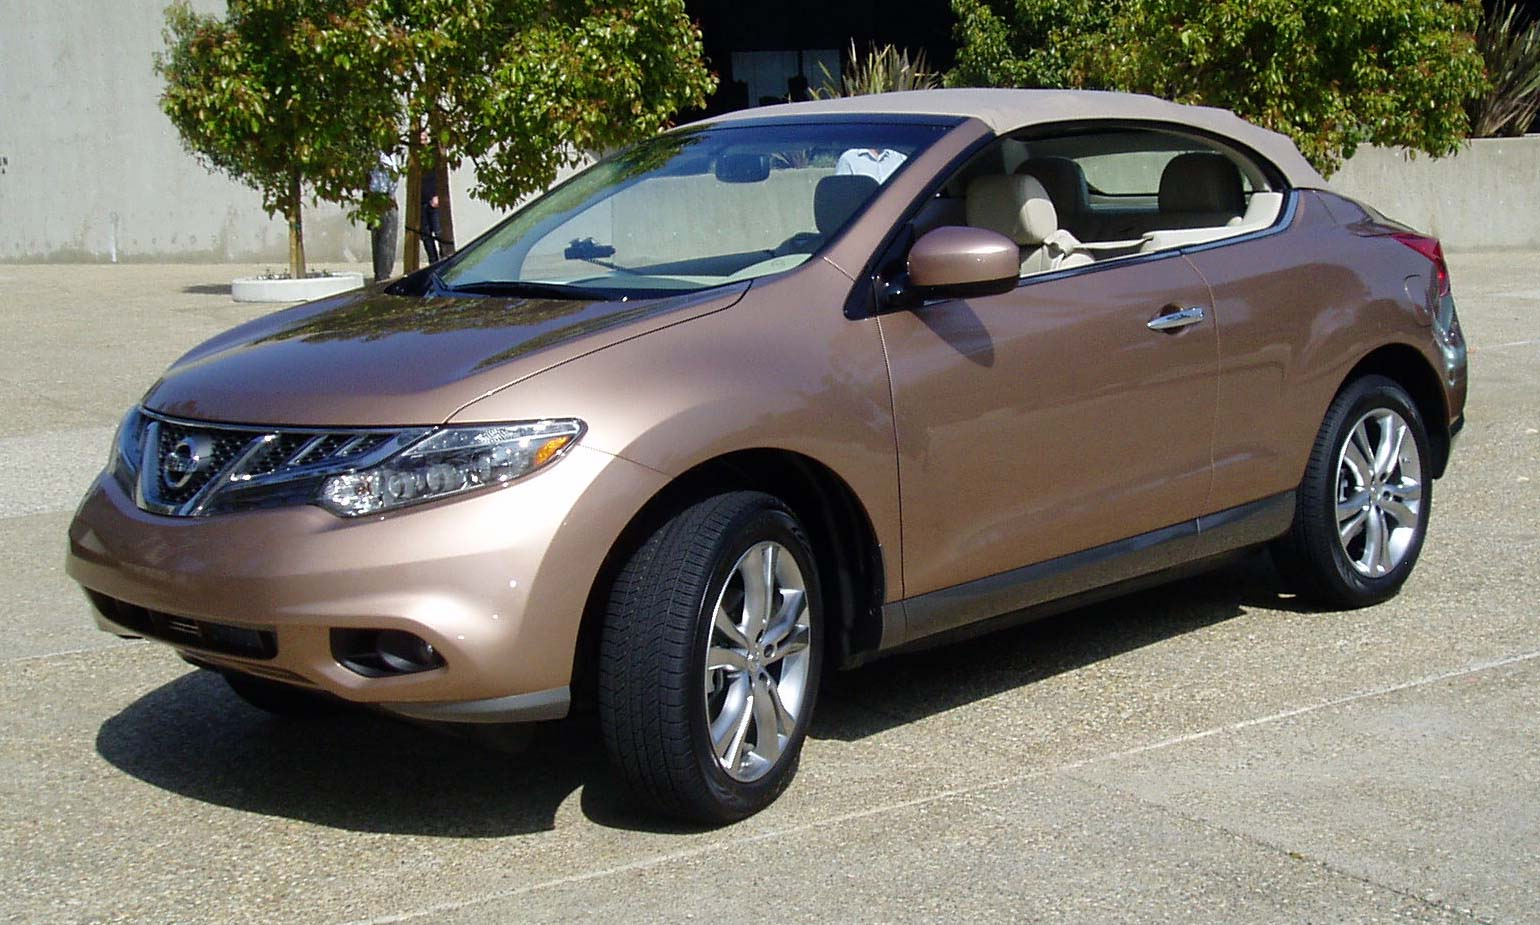 test drive: 2011 nissan murano crosscabriolet – our auto expert